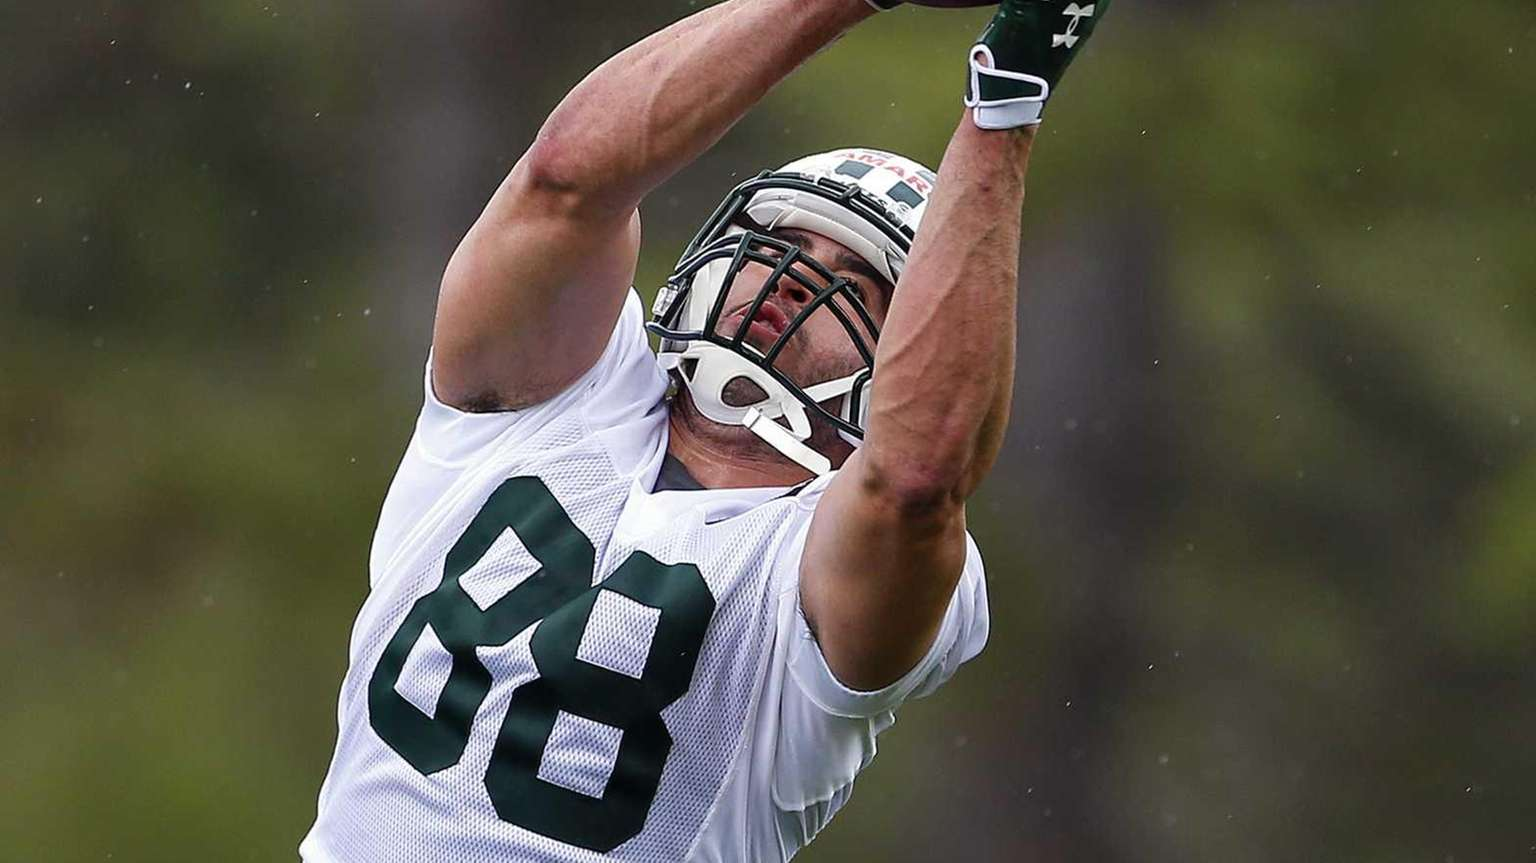 Tight end Jace Amaro of the Jets makes